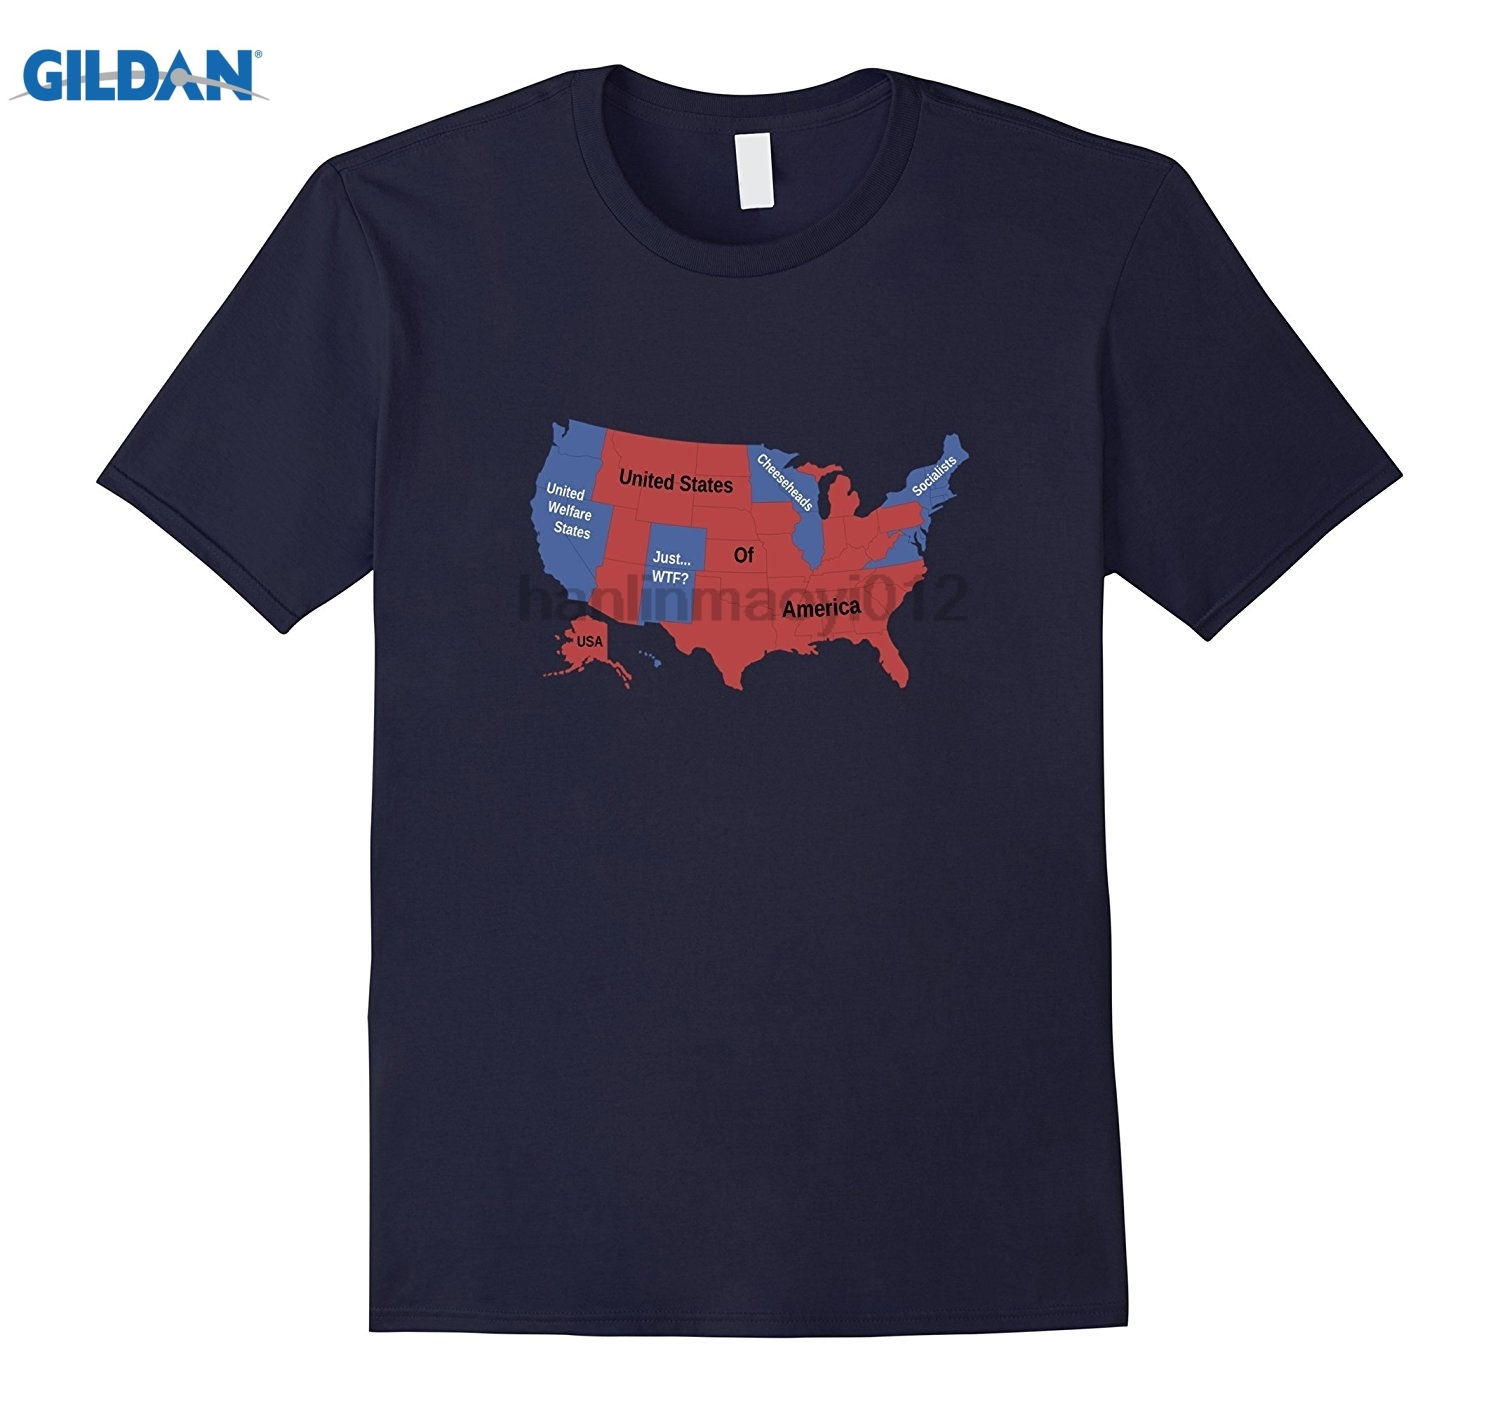 GILDAN Funny USA Post Election 2016 Map For Republicans Hot Womens T-shirt